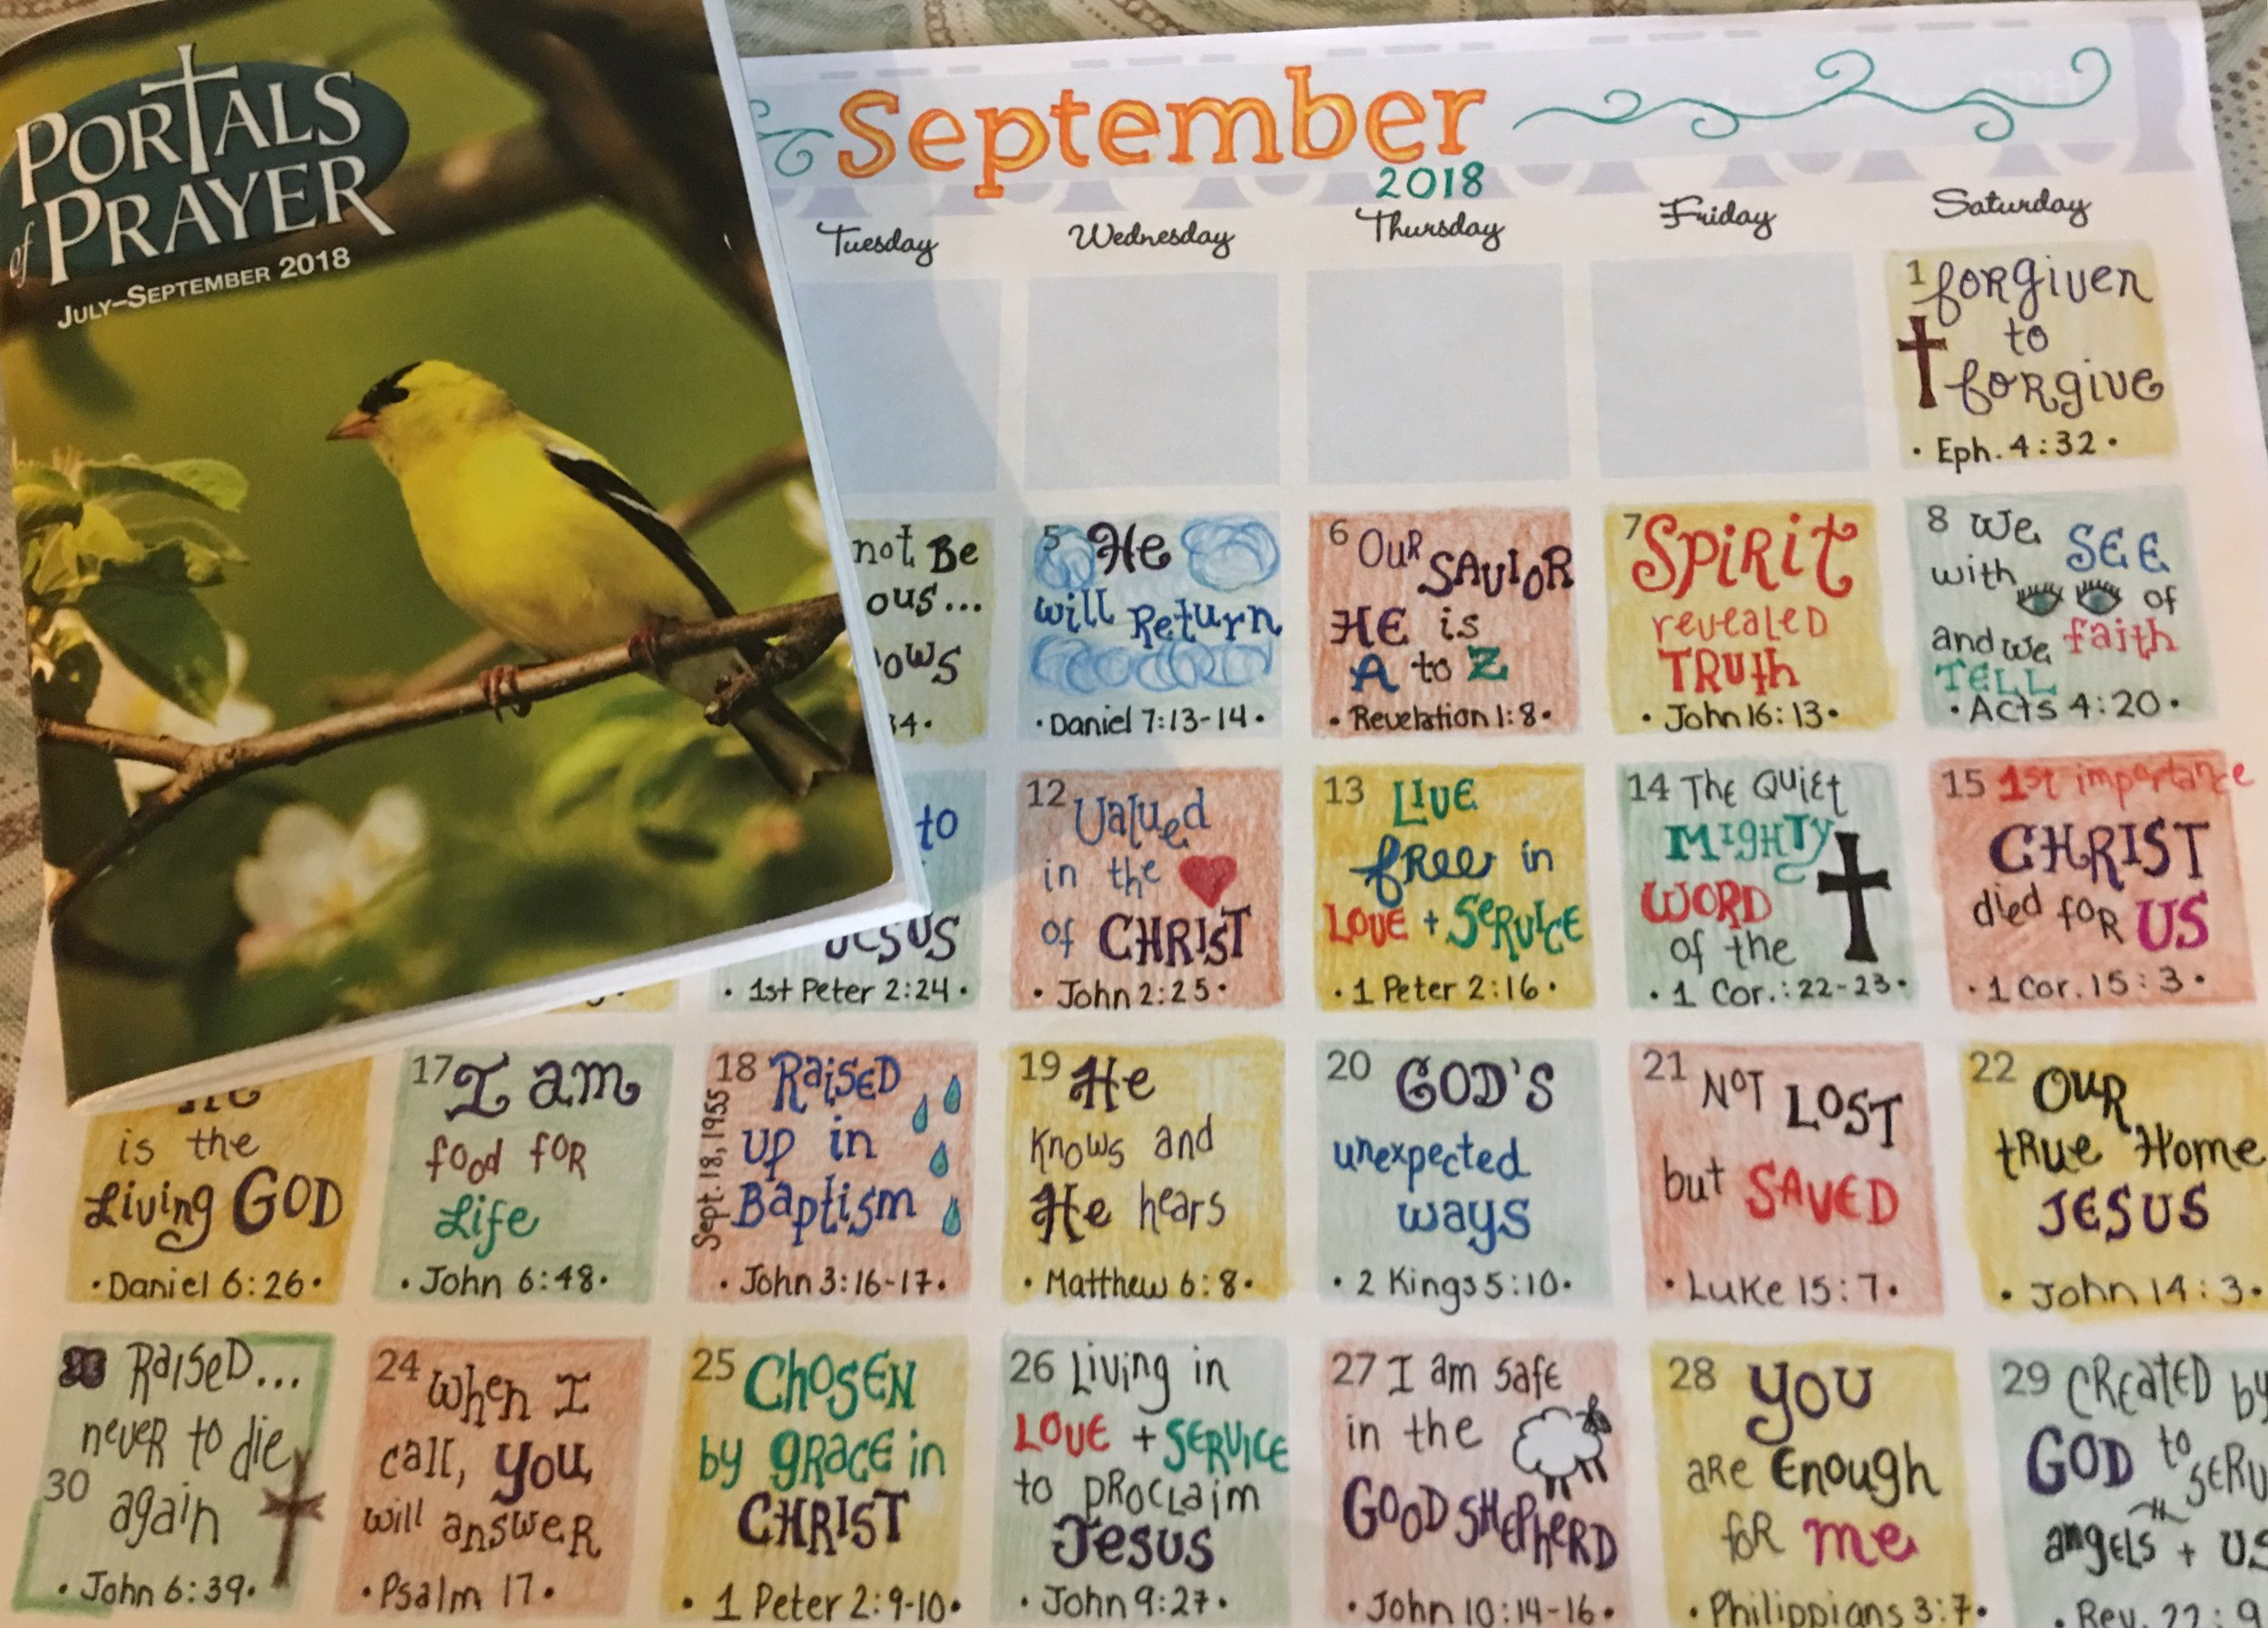 Adding in the Scripture references allows a return to the calendar for meditation and to see just where the readings have led Visual Faith Coach- Jamee Thieme. The calendar method can be used with ANY devotional or Scripture reading practice. The calendar is just a tool to chart the journey.